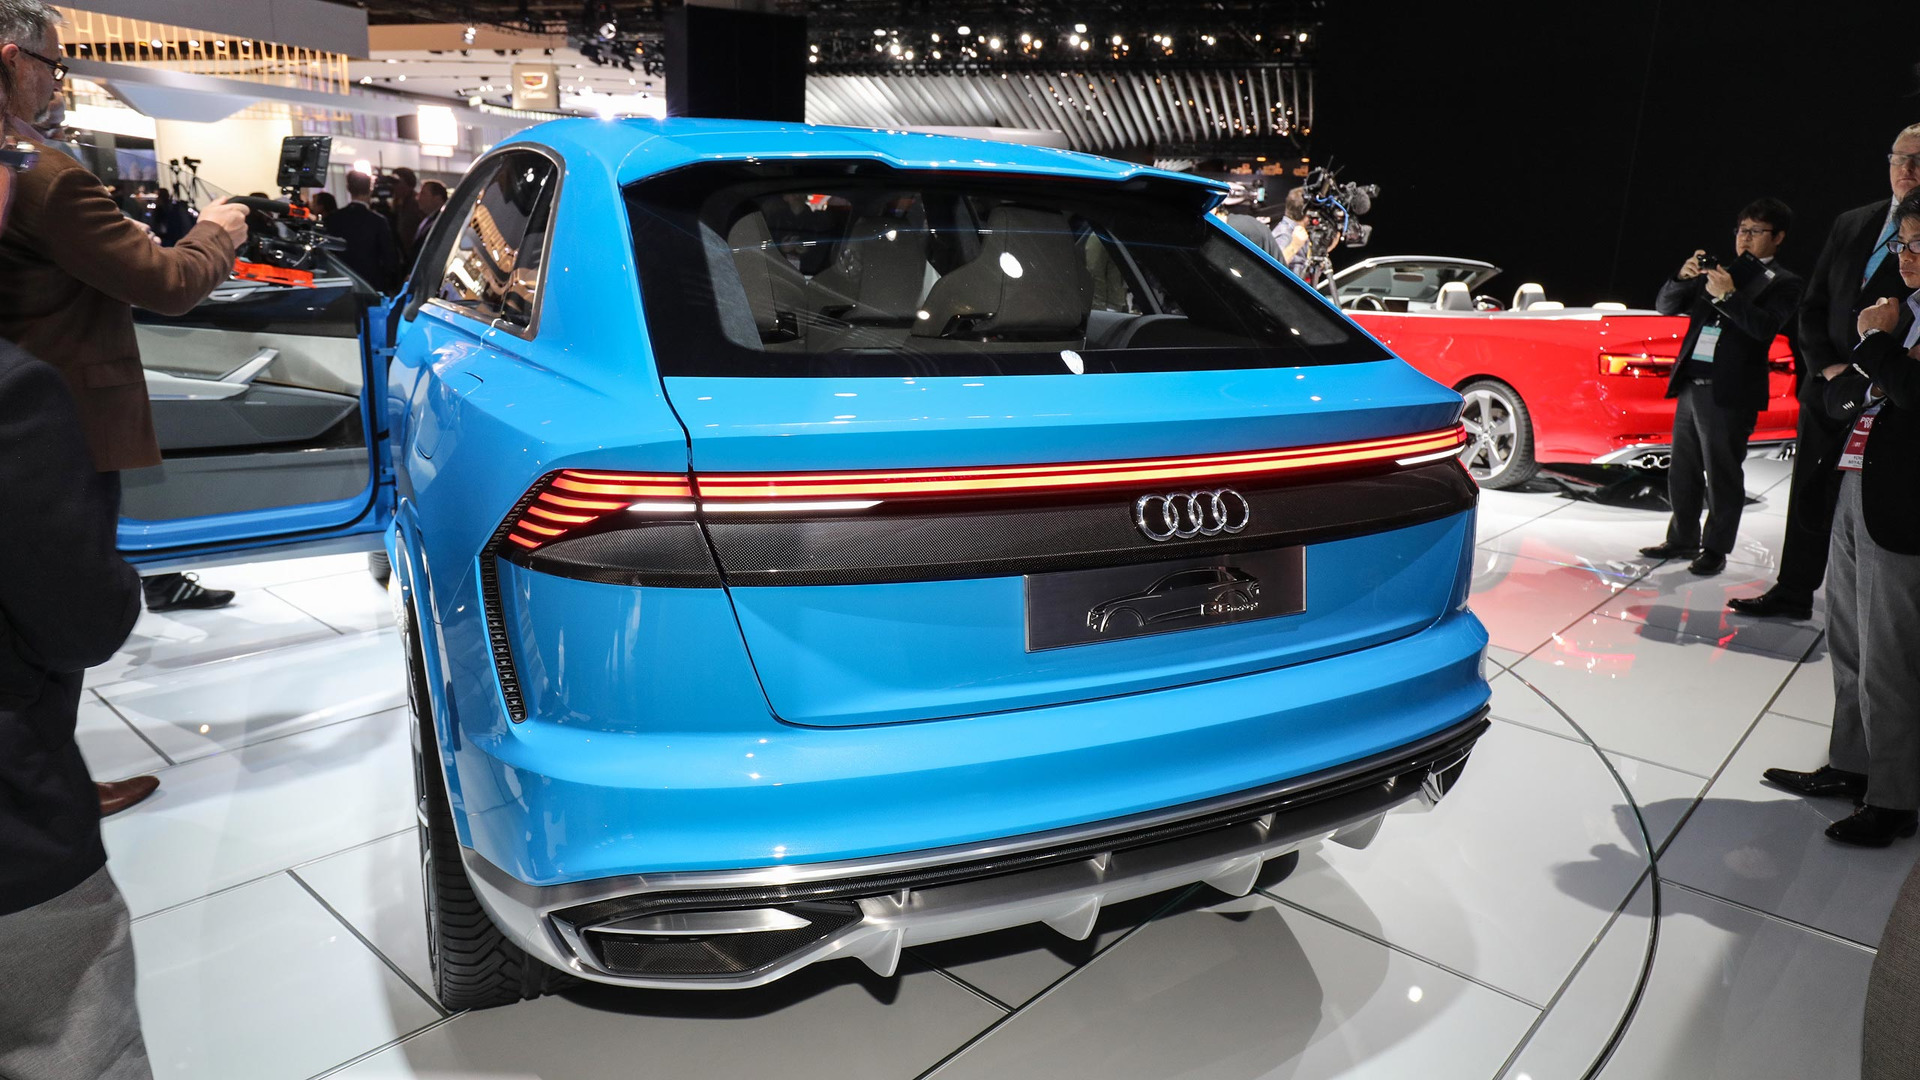 Audi Skipping Detroit Auto Show Joining BMW And Mercedes - Audi detroit